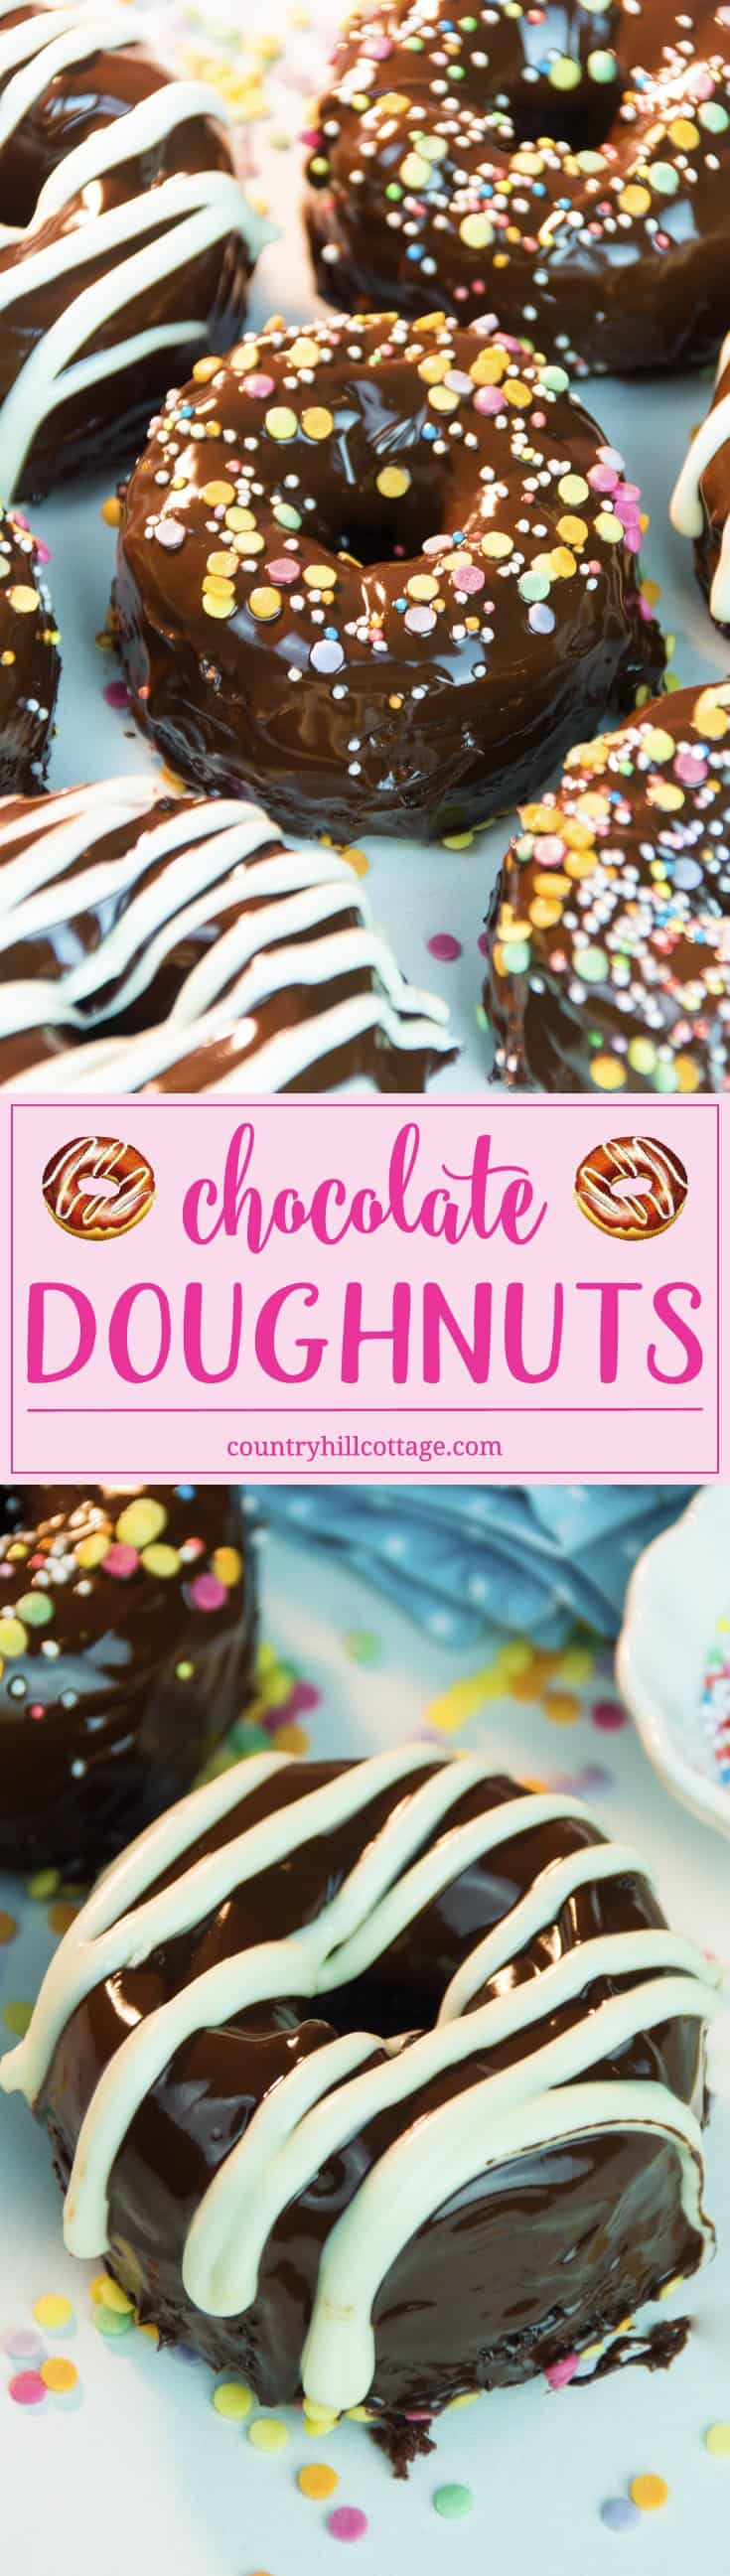 Enjoy delicious chocolate doughnuts with a shiny chocolate glaze! Get our recipe for moist and moreish baked doughnuts and a three-ingredient chocolate glaze that tastes rich and looks beautifully glossy and download a cute printable doughnut box. #doughnuts #donuts #chocolateglaze | countryhillcottage.com